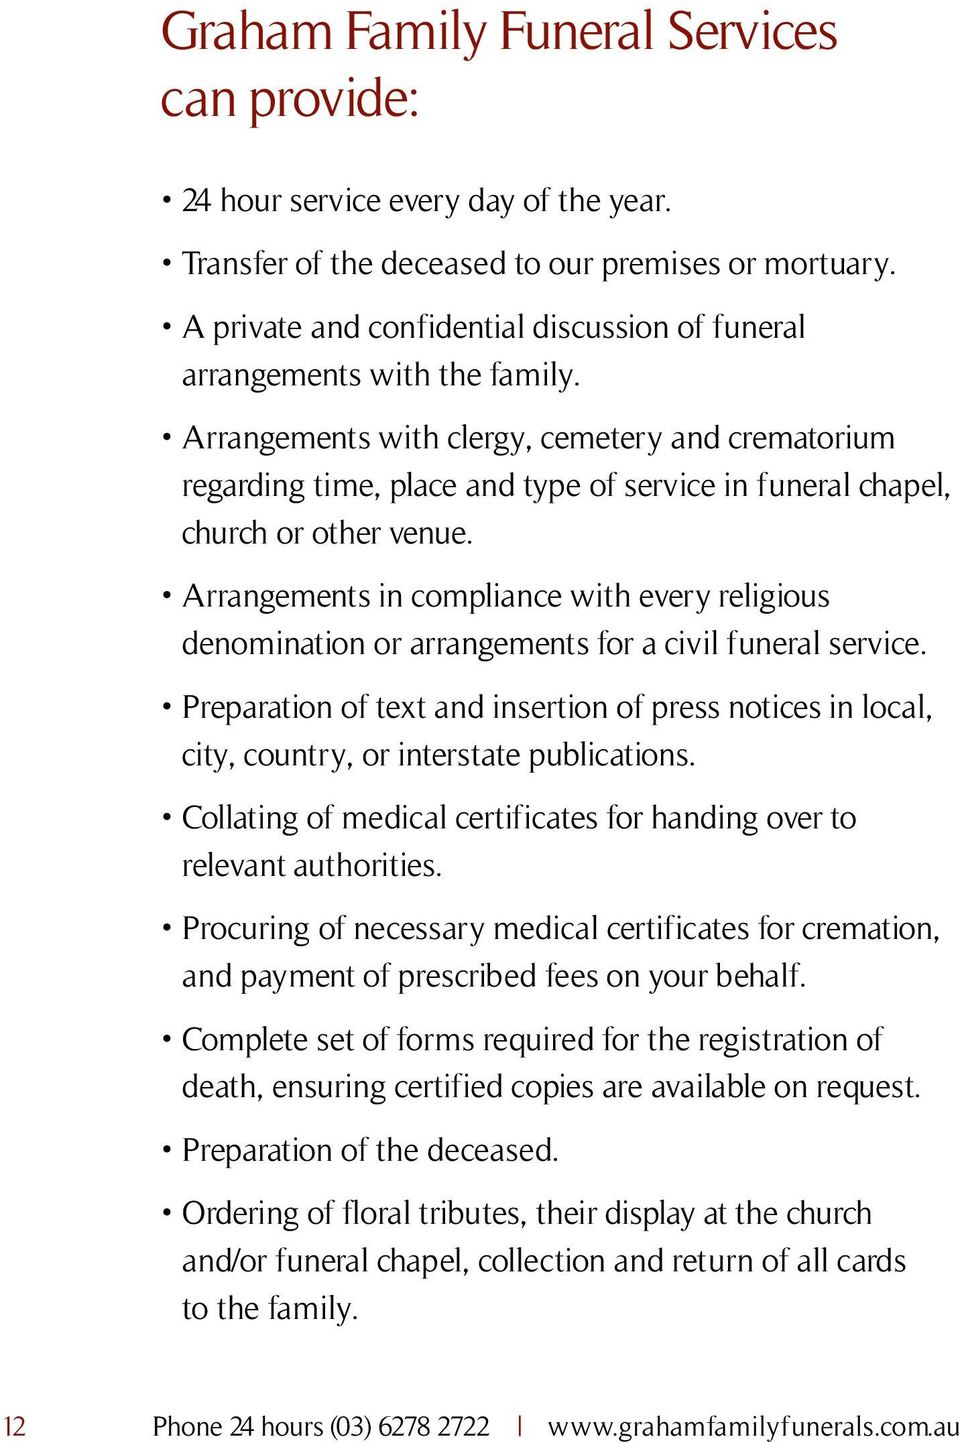 Arrangements with clergy, cemetery and crematorium regarding time, place and type of service in funeral chapel, church or other venue.